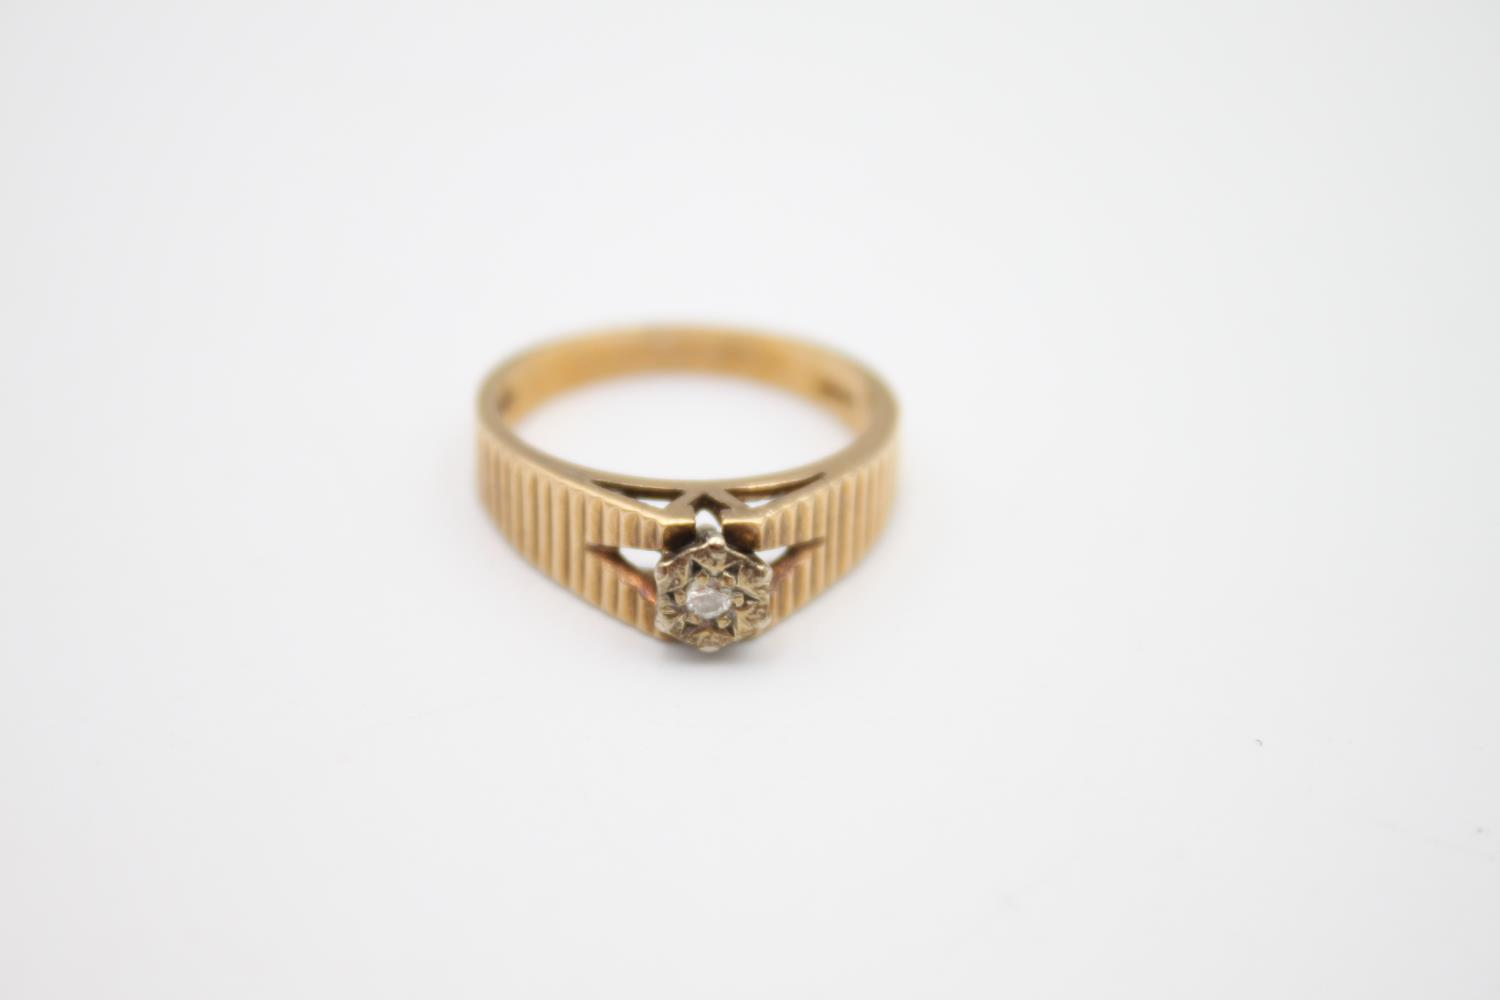 9ct gold textured diamond solitaire ring 3.2g Size M